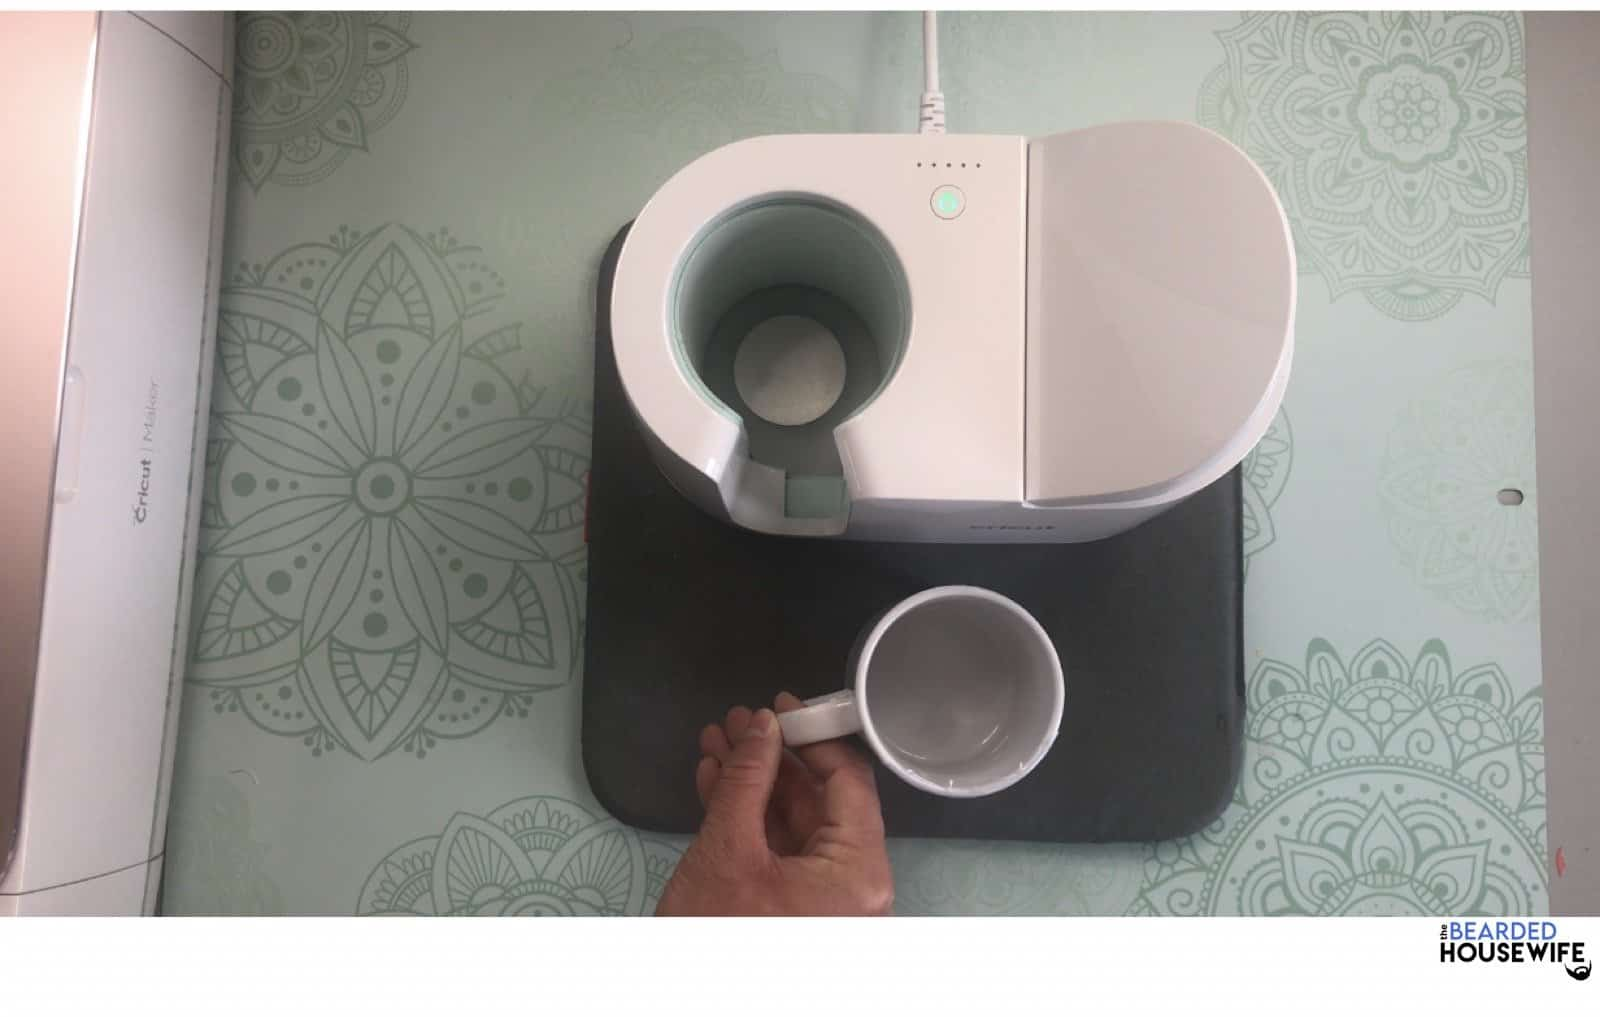 take your mug out and rest it on the easypress mat